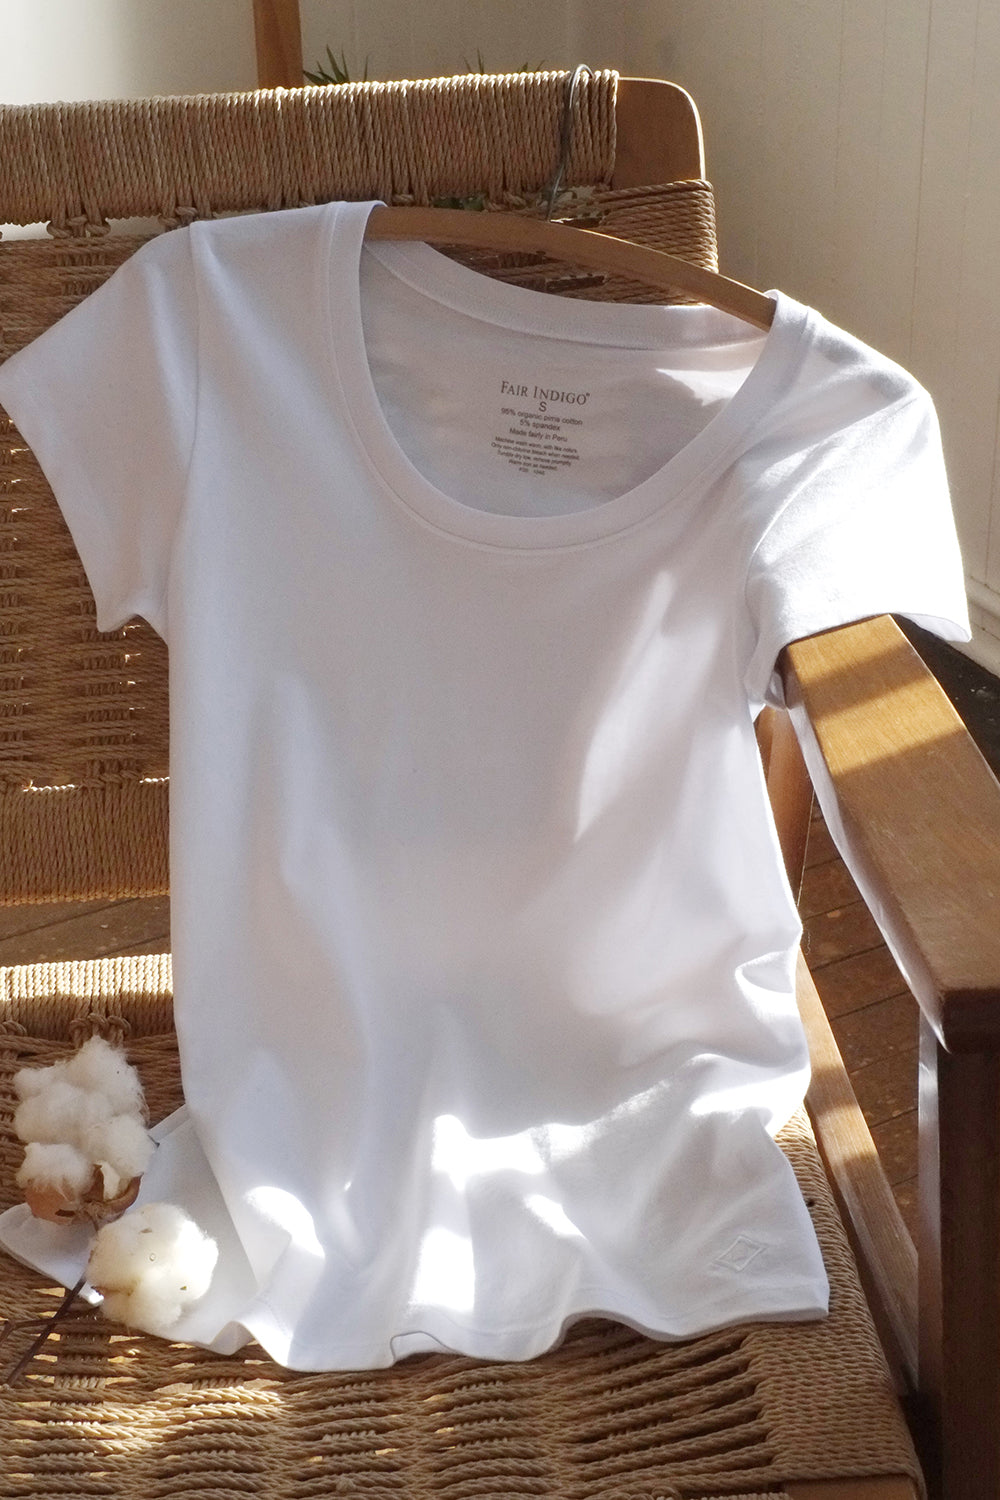 Womens White Organic Cotton T-shirt - Fair Indigo